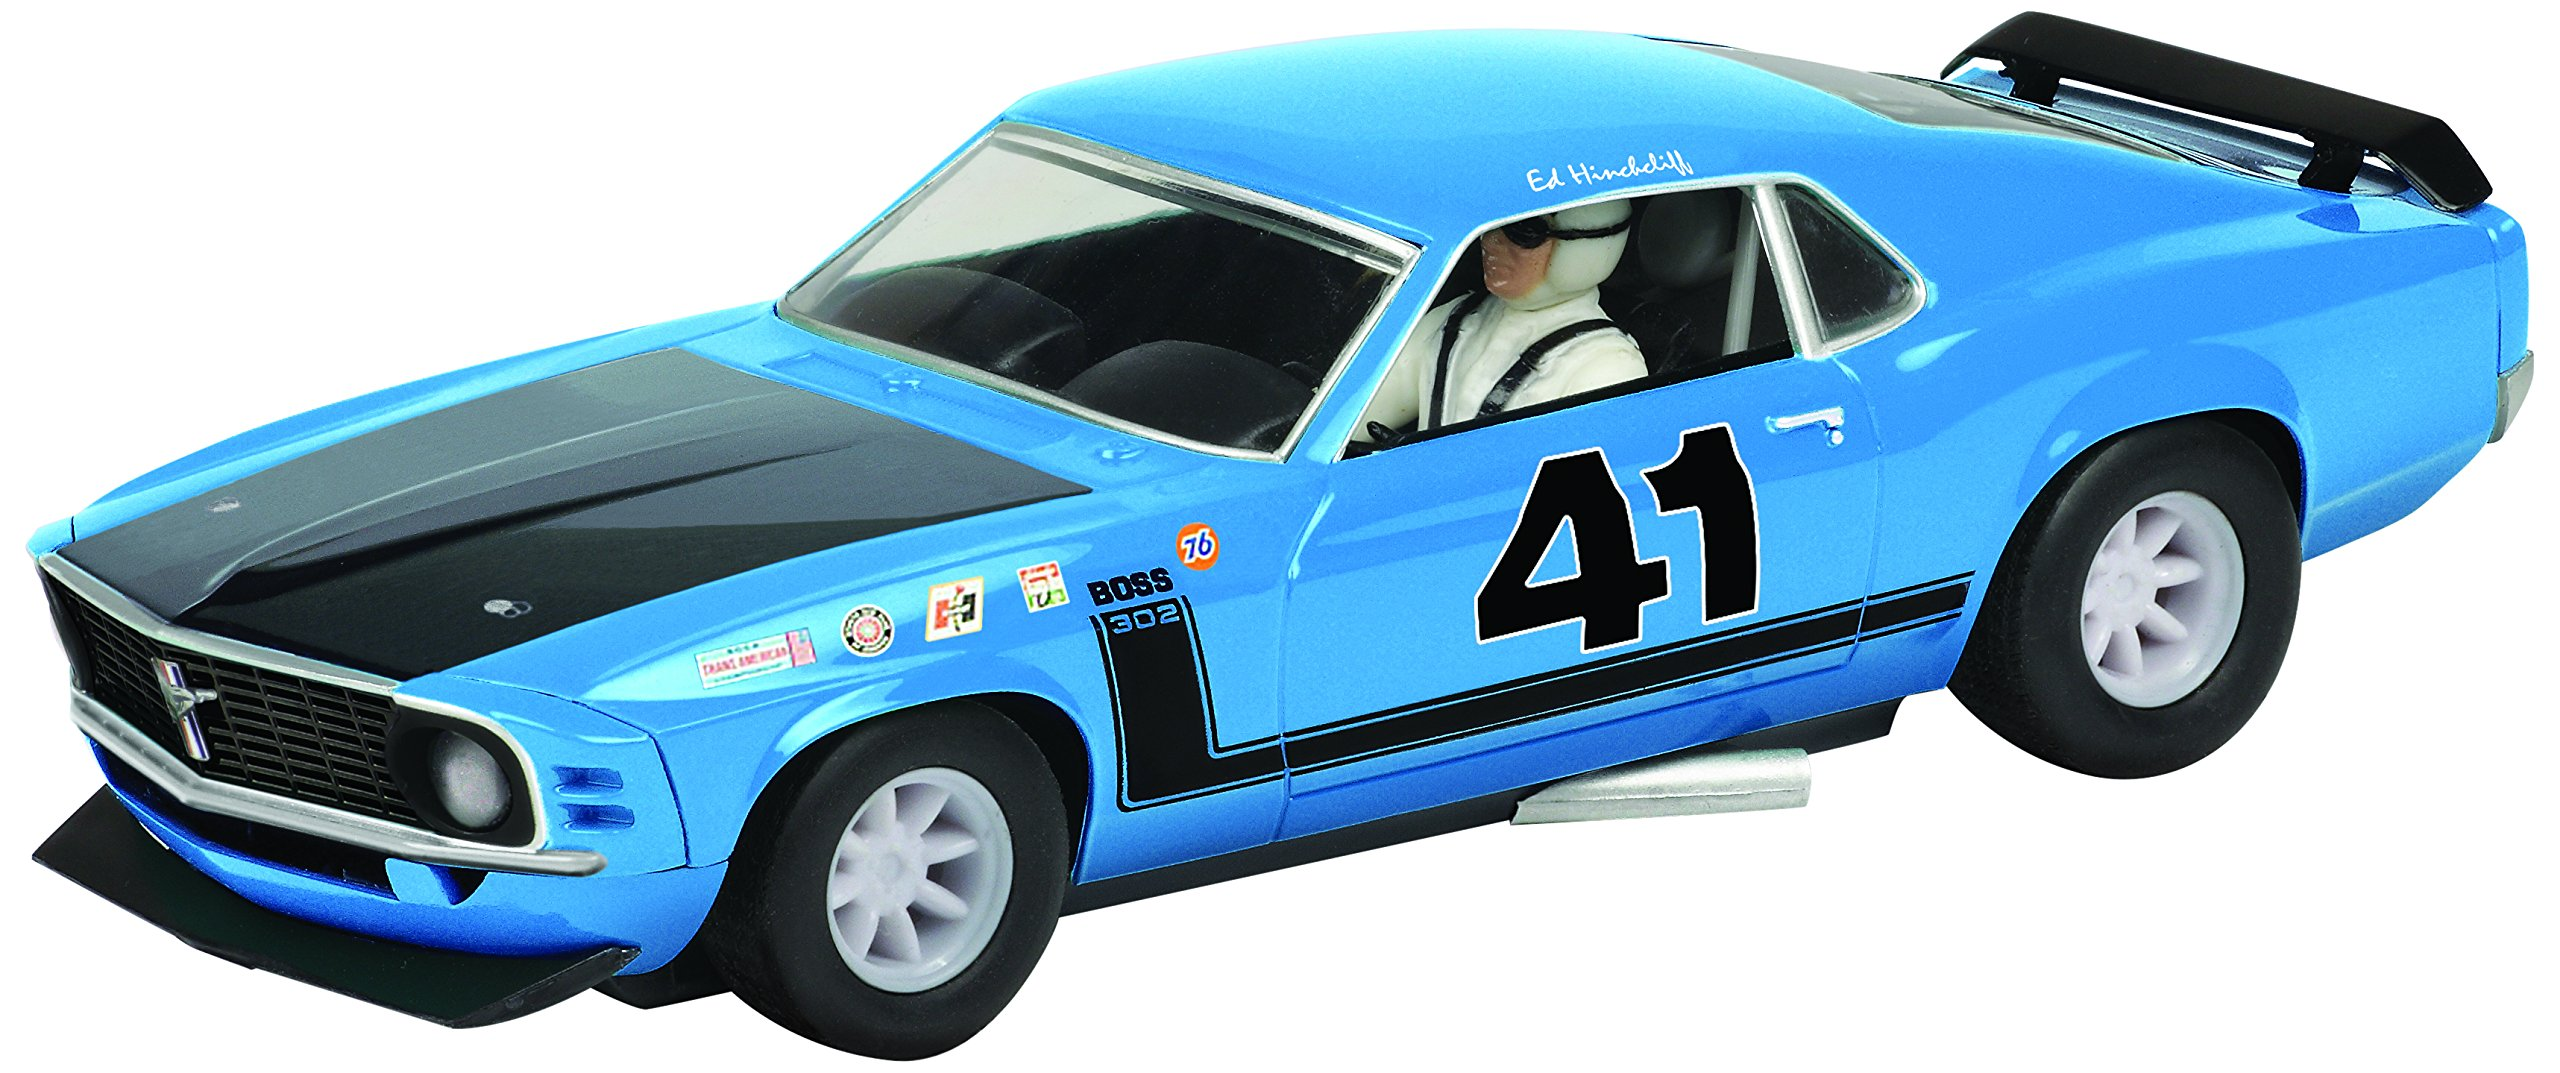 Scalextric C3613 Ford Mustang Boss 302 1969 Trans-Am Championship Ed Hinchliff Slot Car (1:32 Scale)